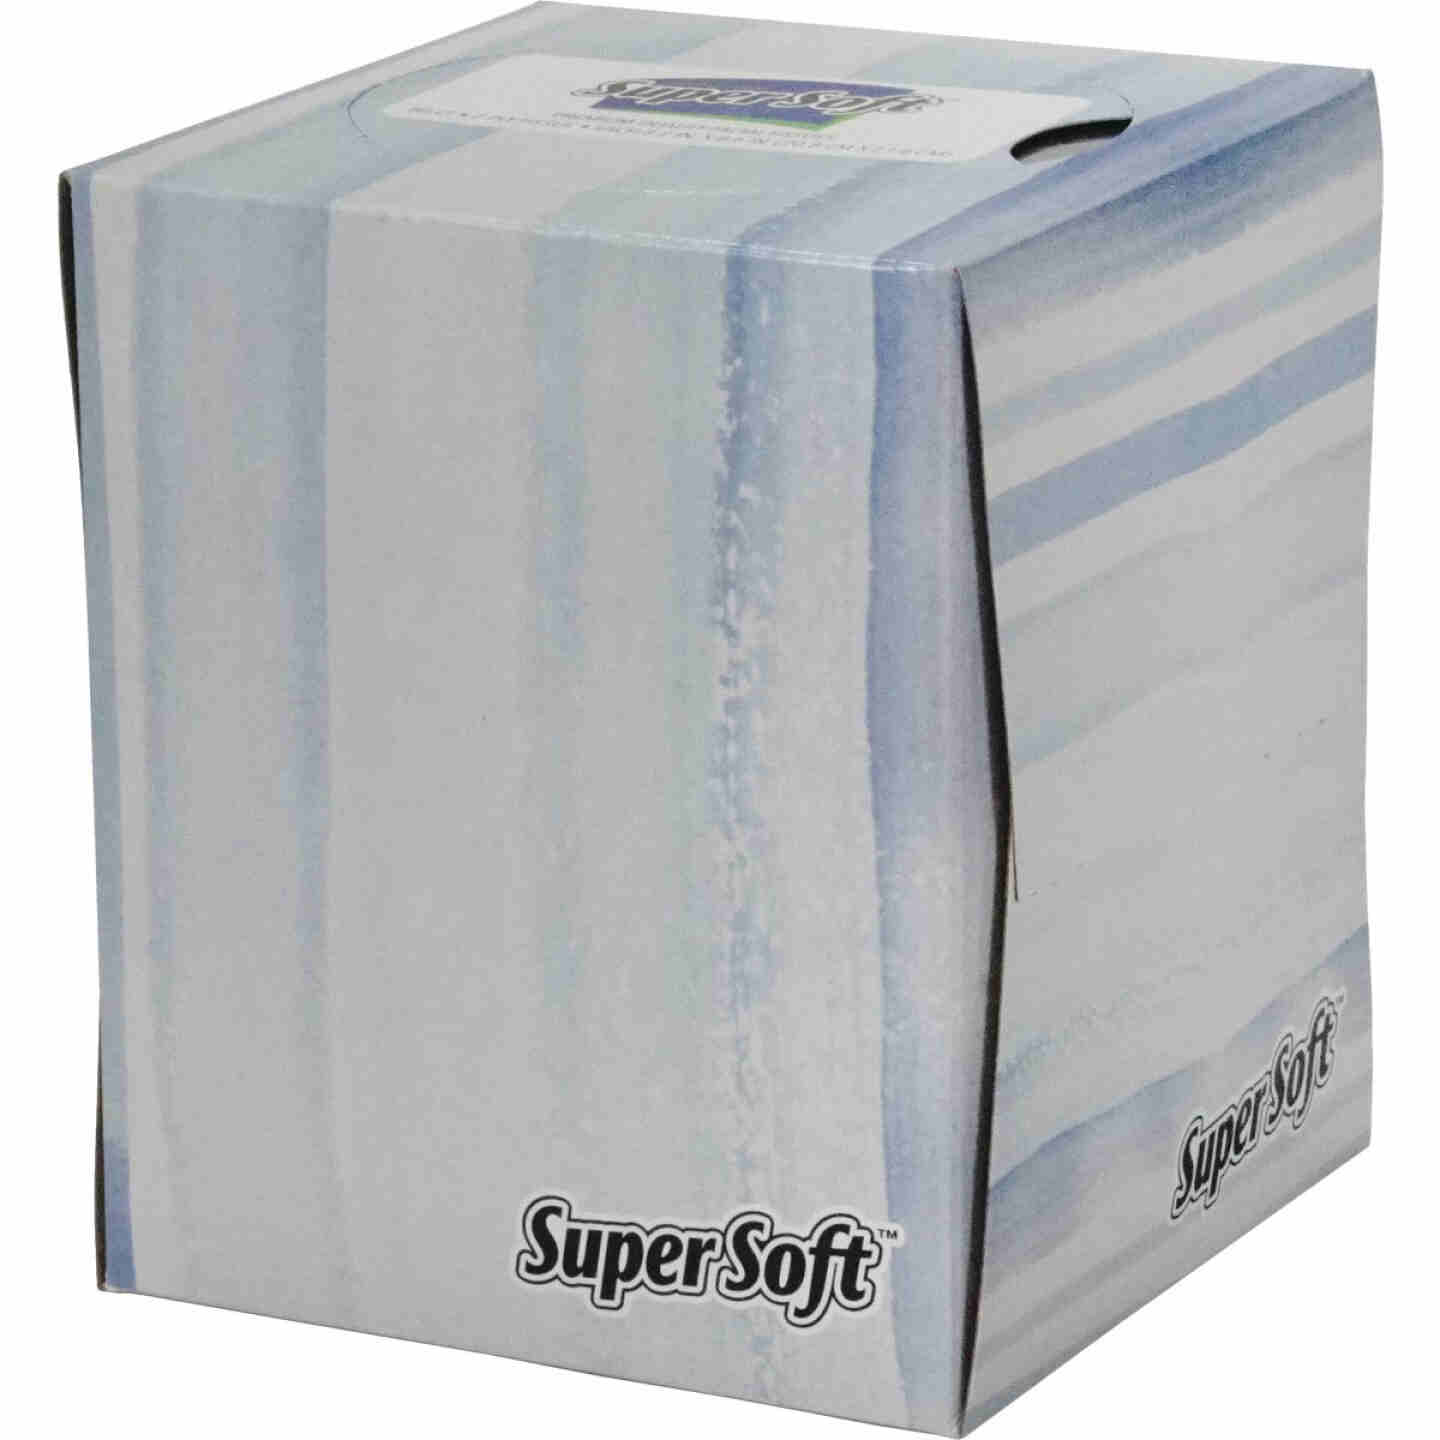 Super Soft 80 Count Premium Facial Tissues Image 1